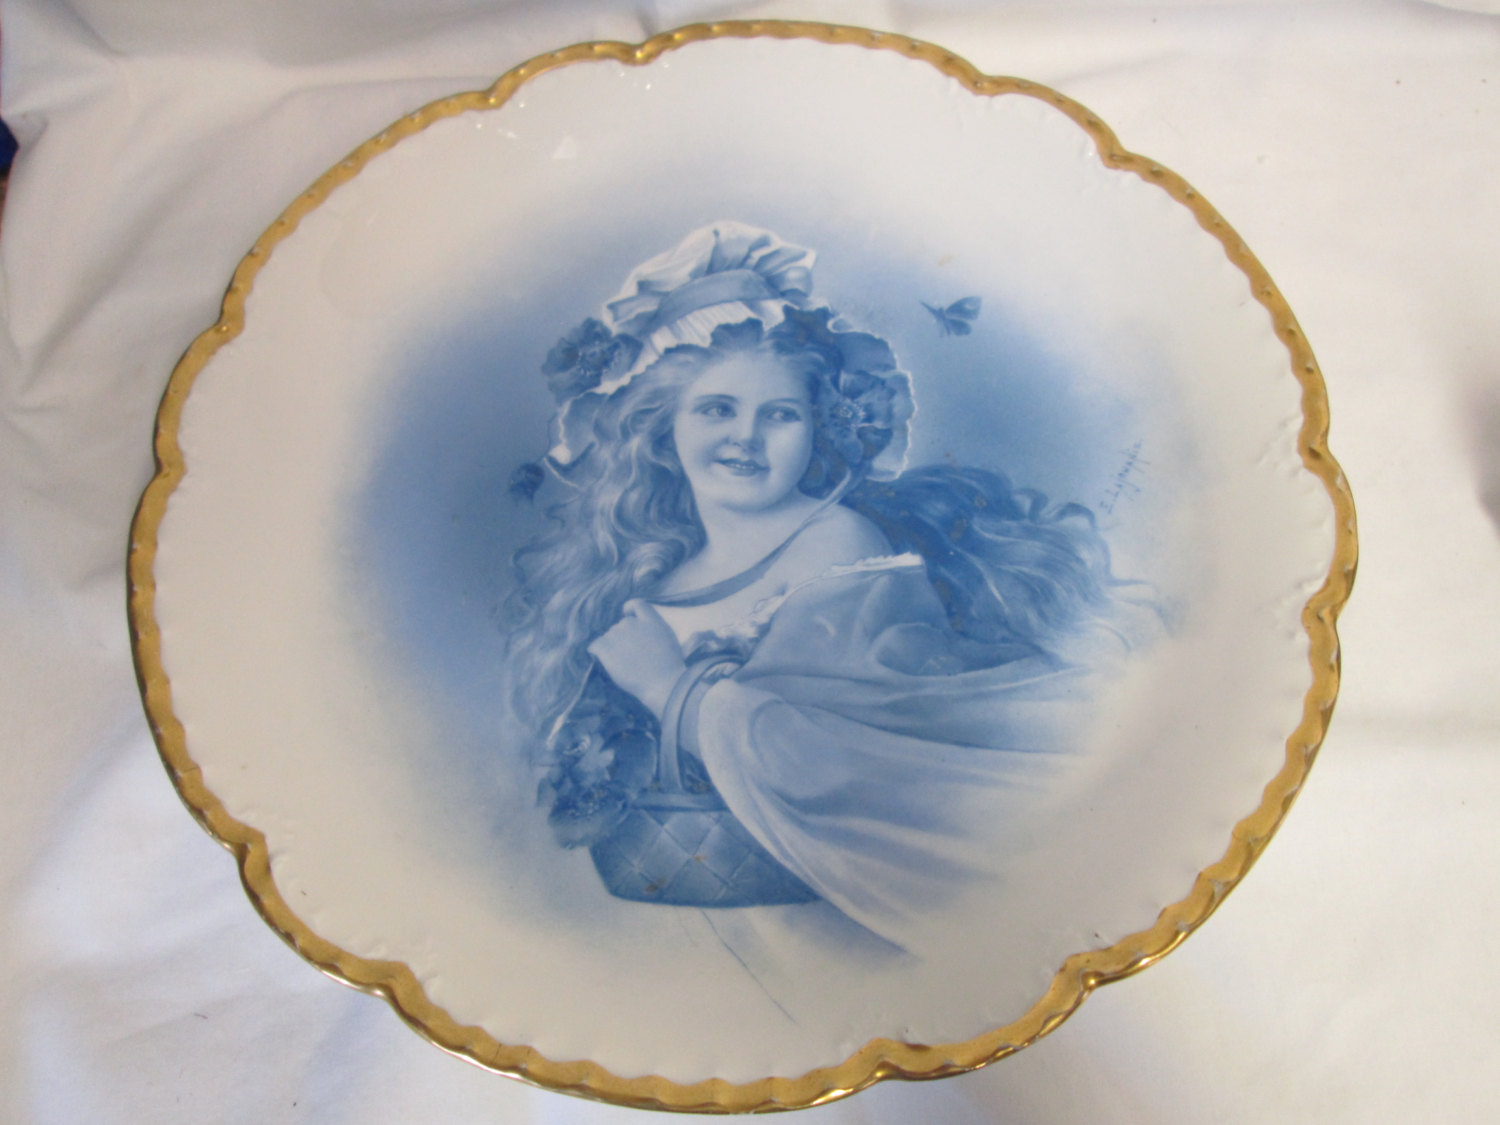 Beautiful Large Limoges Wall Hanging Plate Signed by Artist Hand painted turn of the century fine bone china Blue & white Victoriangold trim